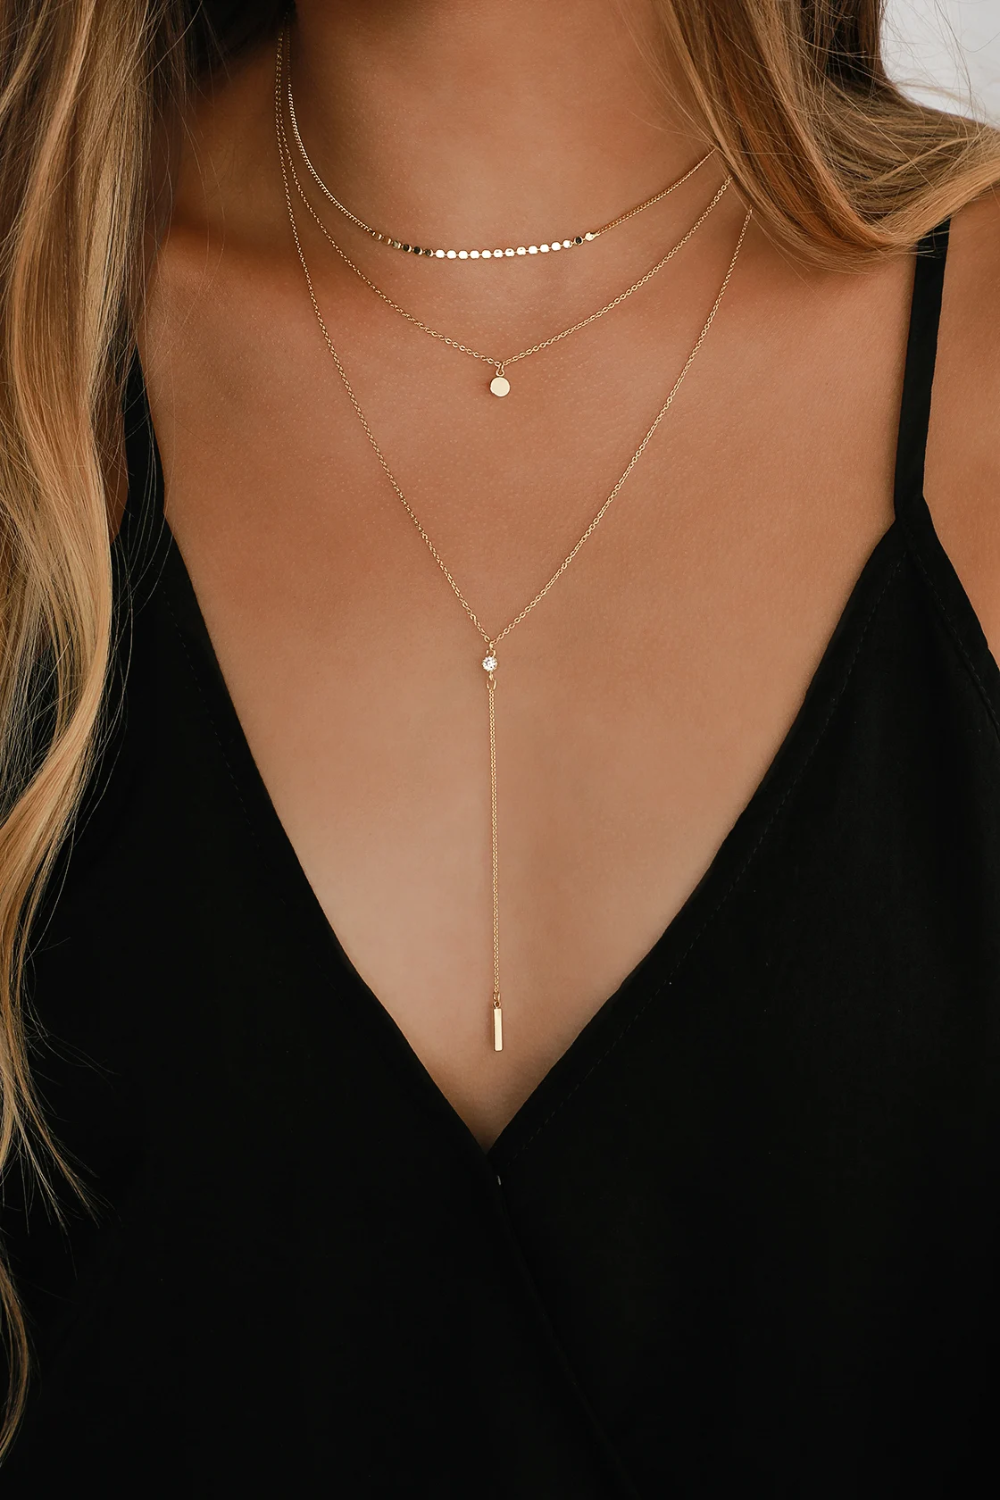 Coretta Layered Gold Necklace In 2020 Gold Necklace Layered Gold Necklace Fashion Necklace